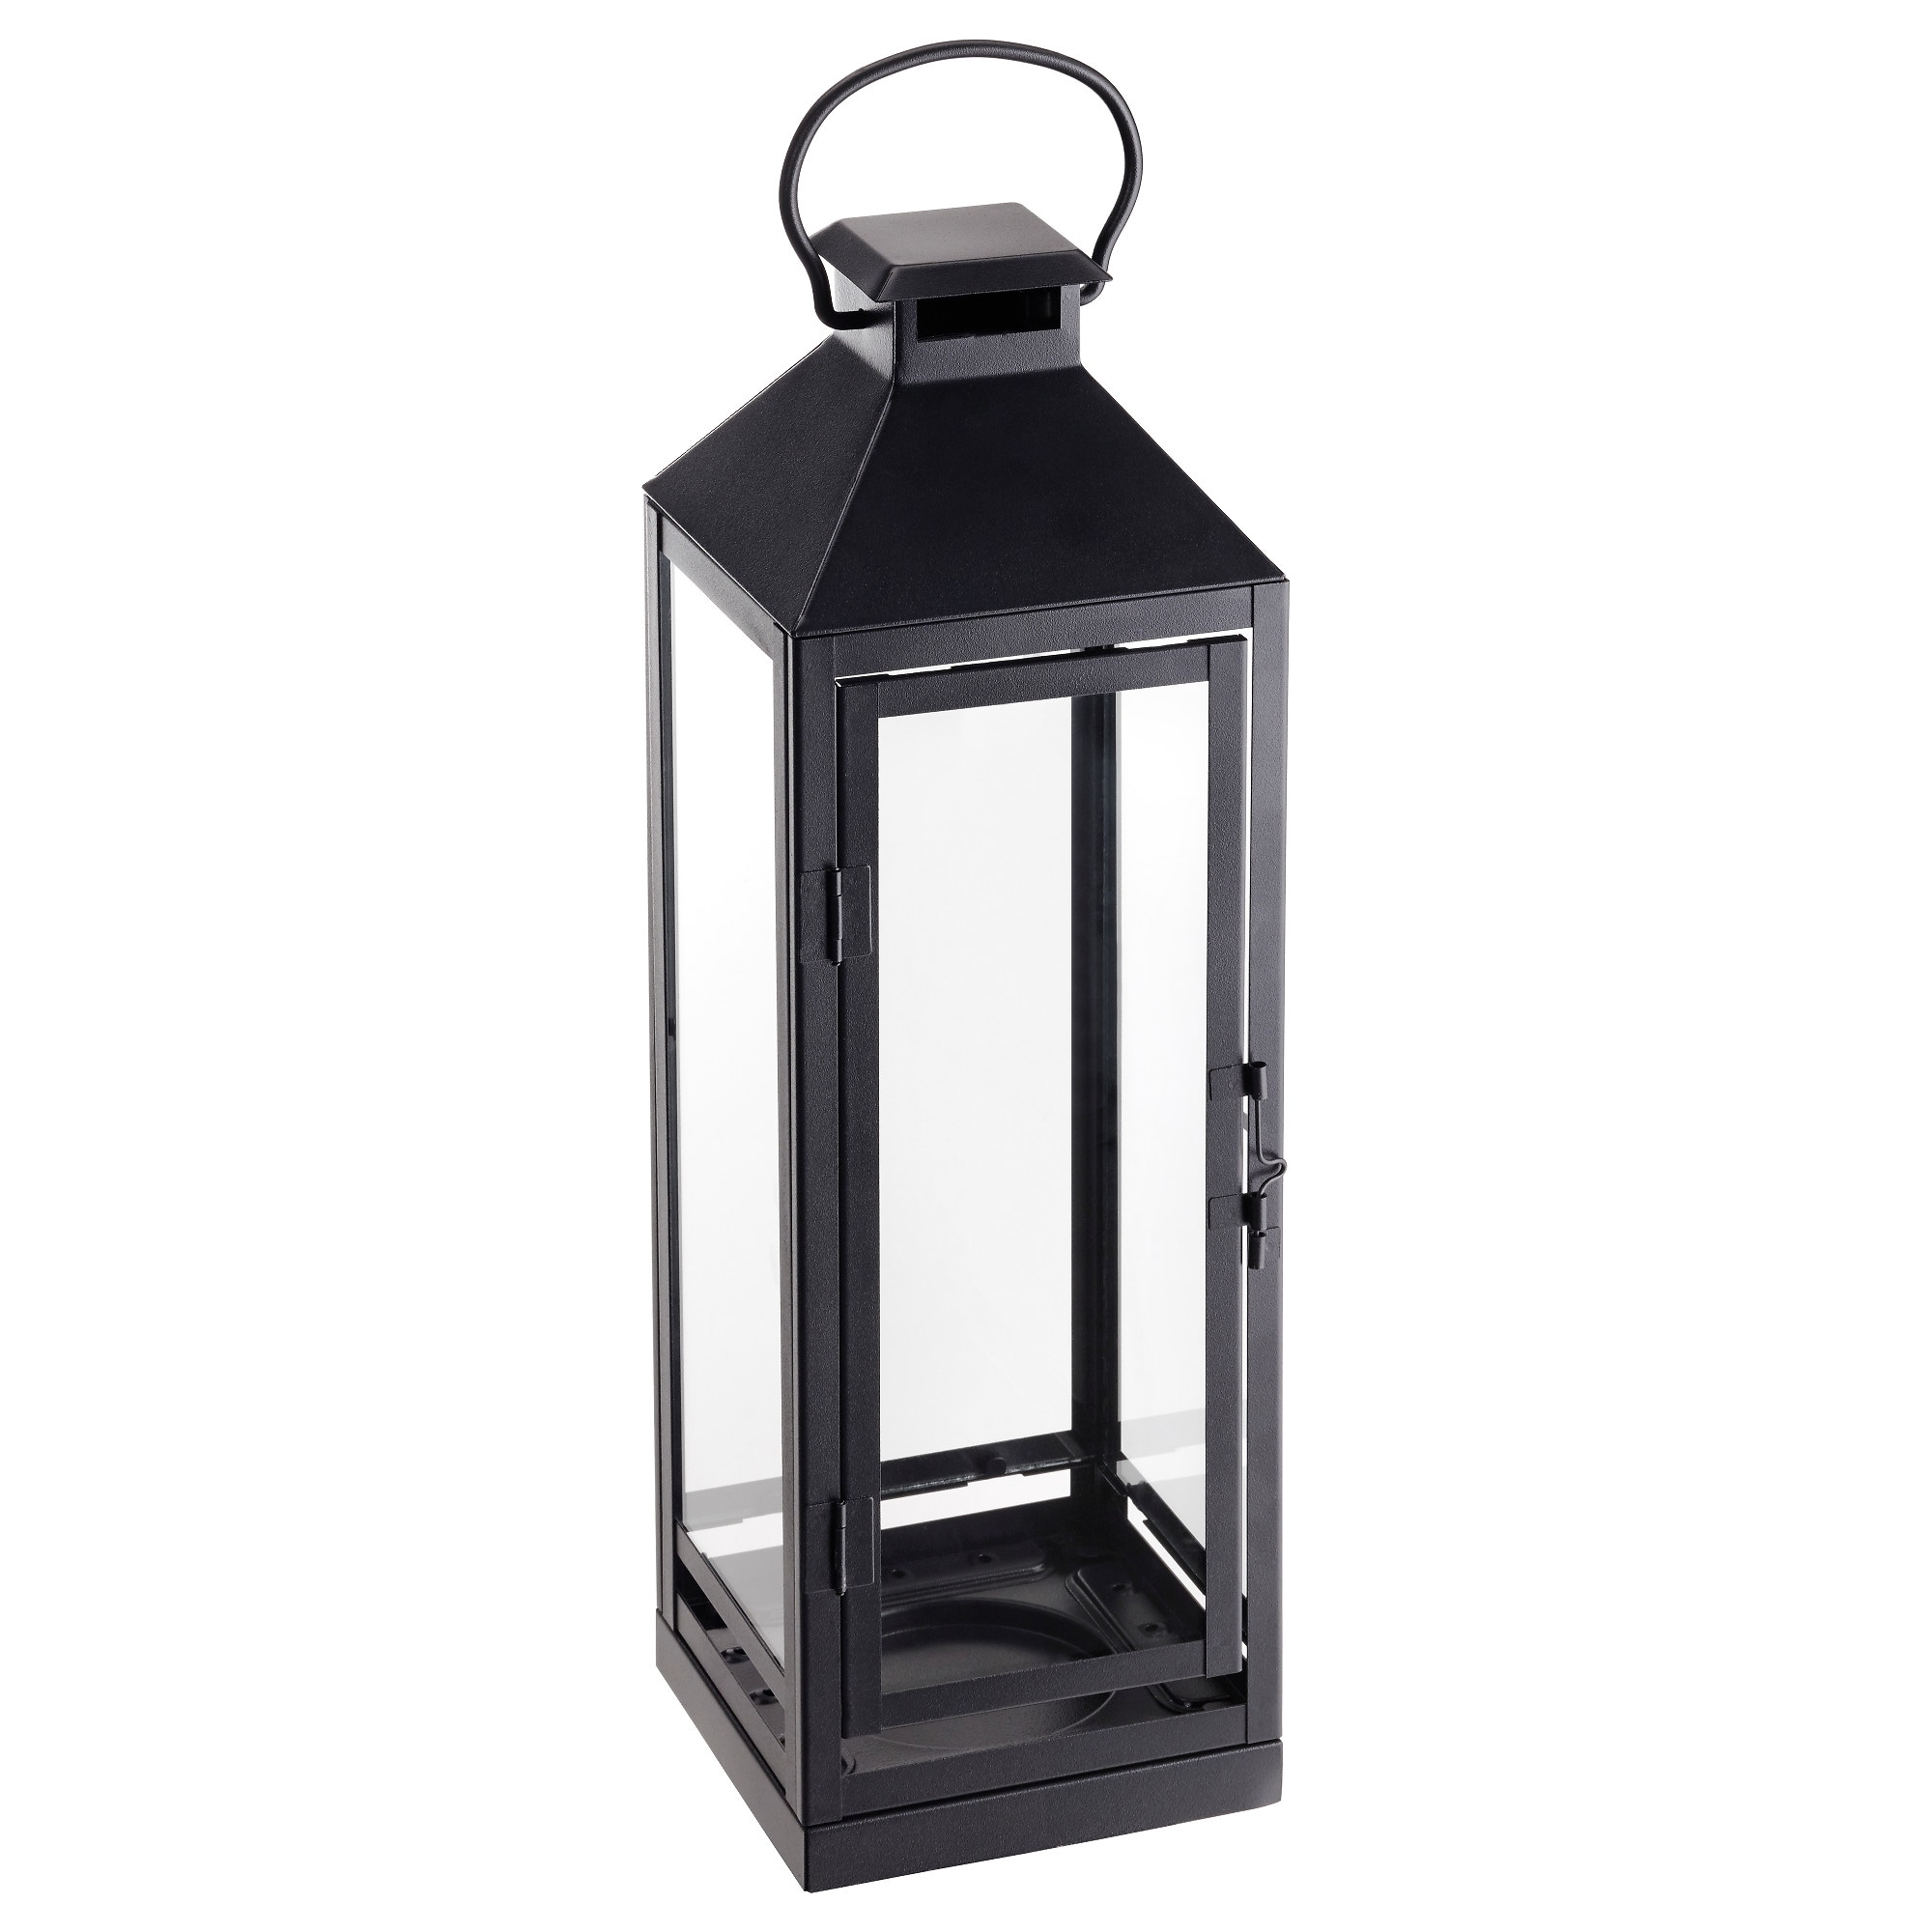 Outdoor Oversized Lanterns Intended For Most Current Lanterns & Candle Lanterns – Ikea (View 11 of 20)